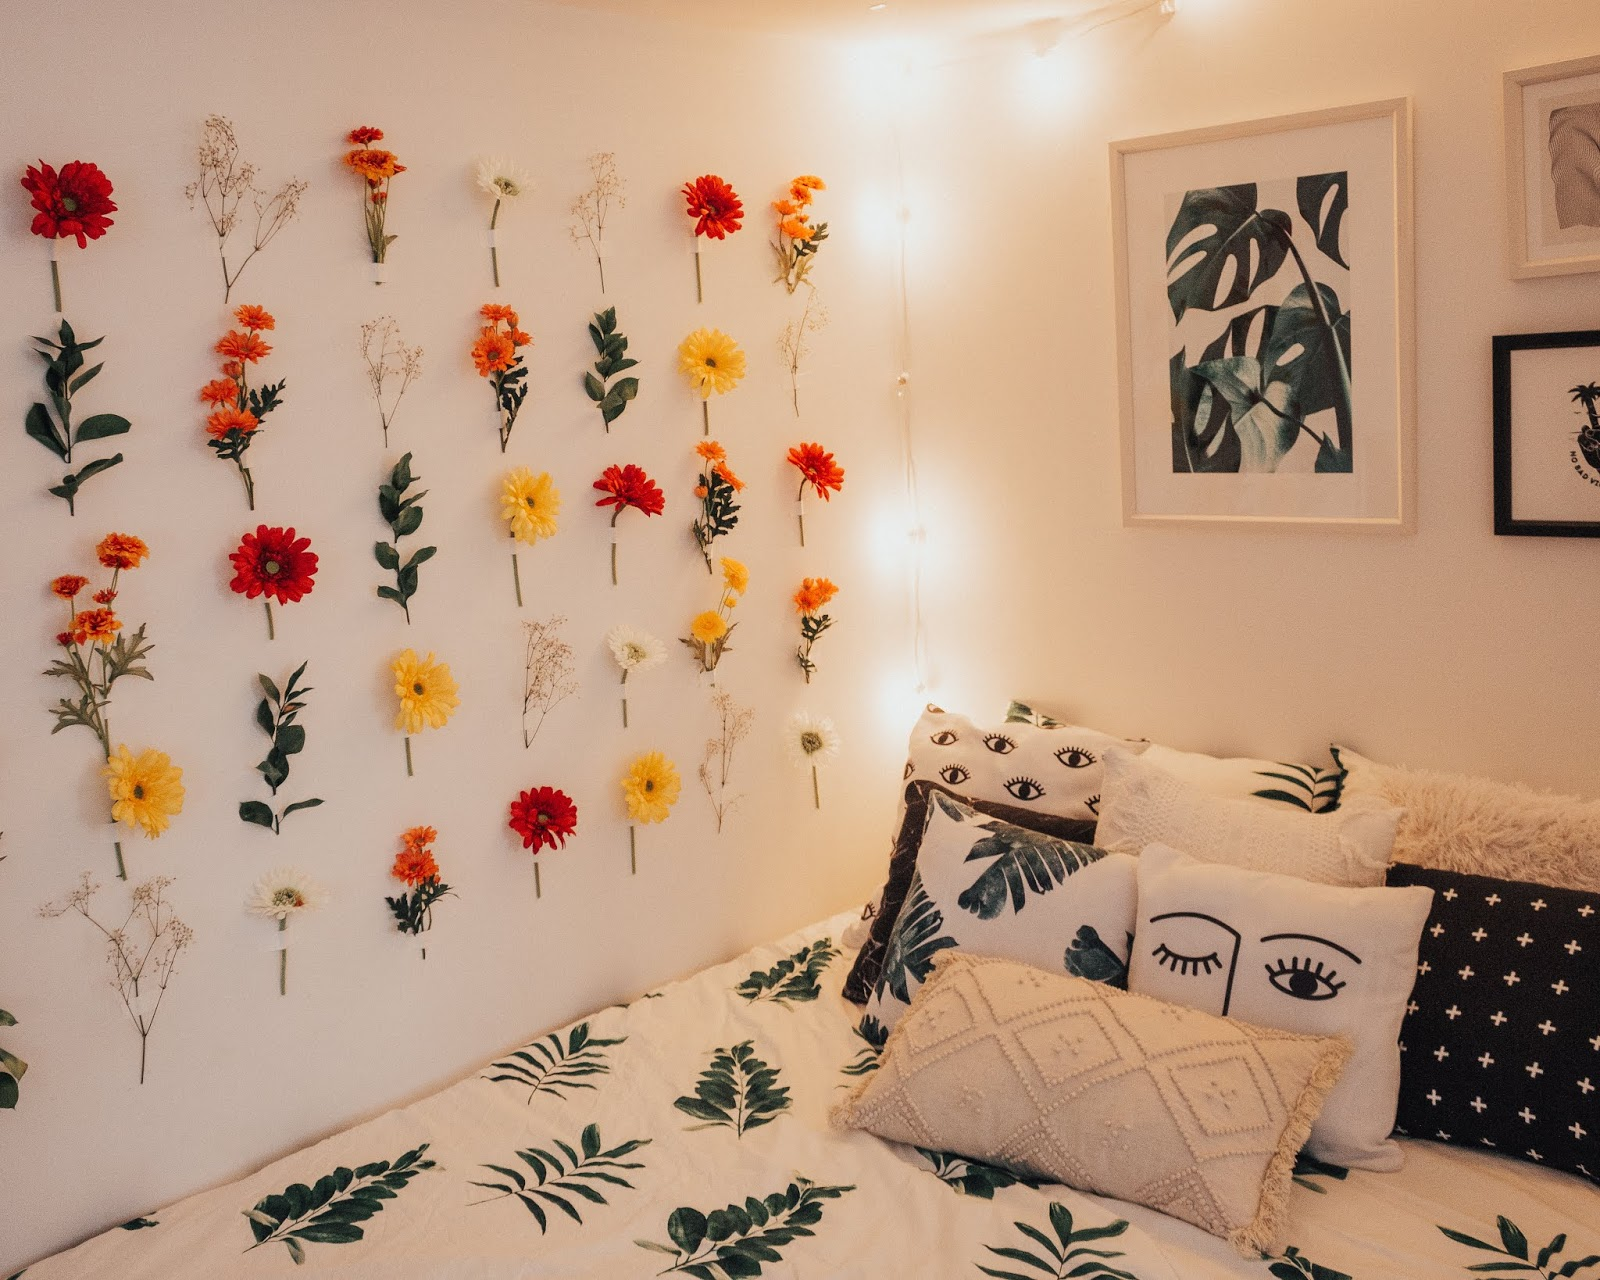 Diy Wall Flowers: DIY Flower Wall: How To + Tips